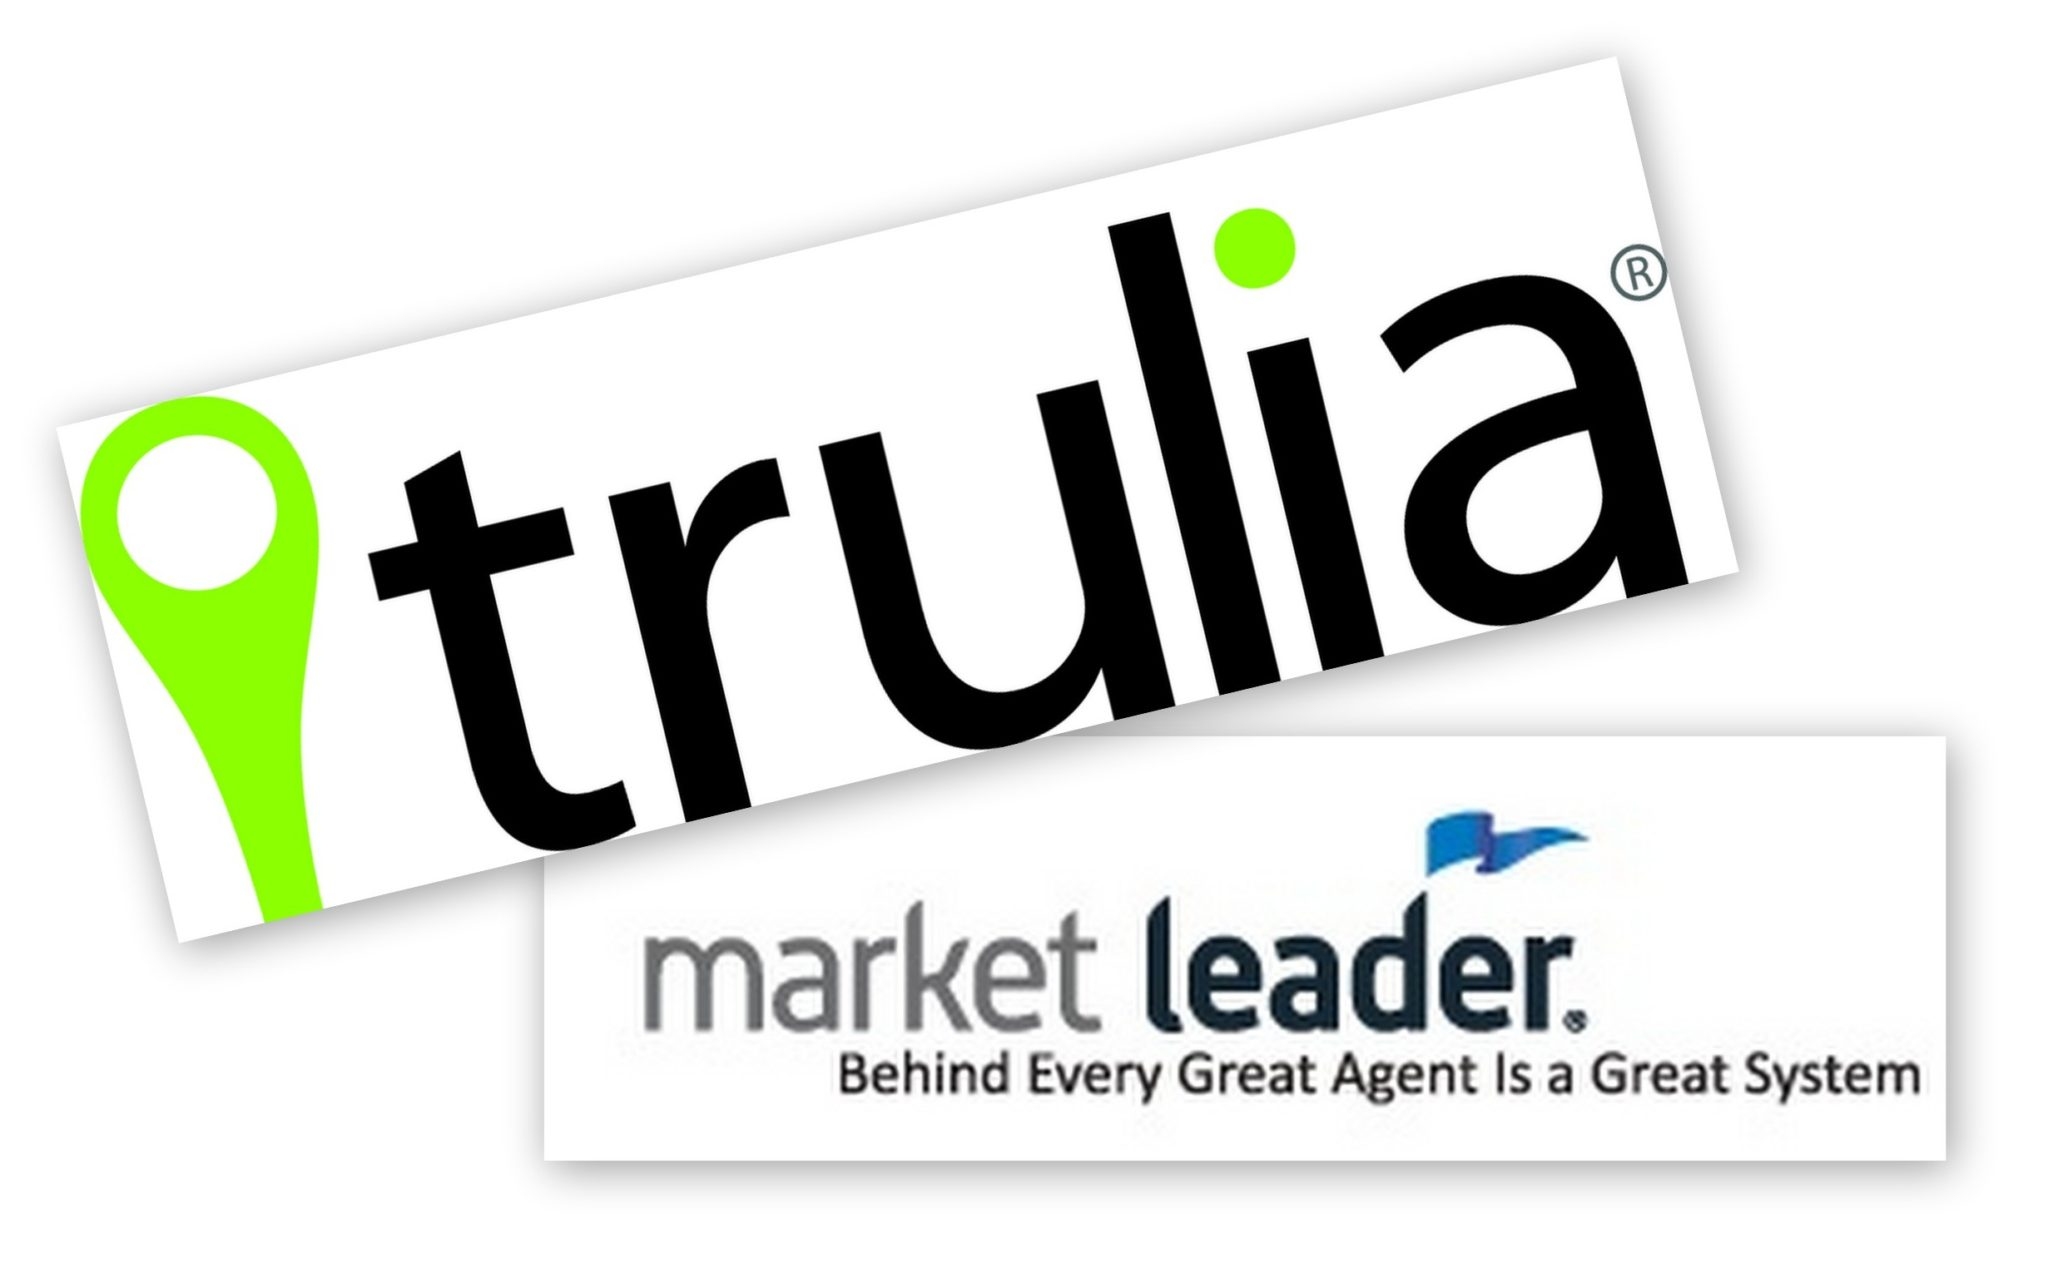 Trulia set to acquire Market Leader for $355 million